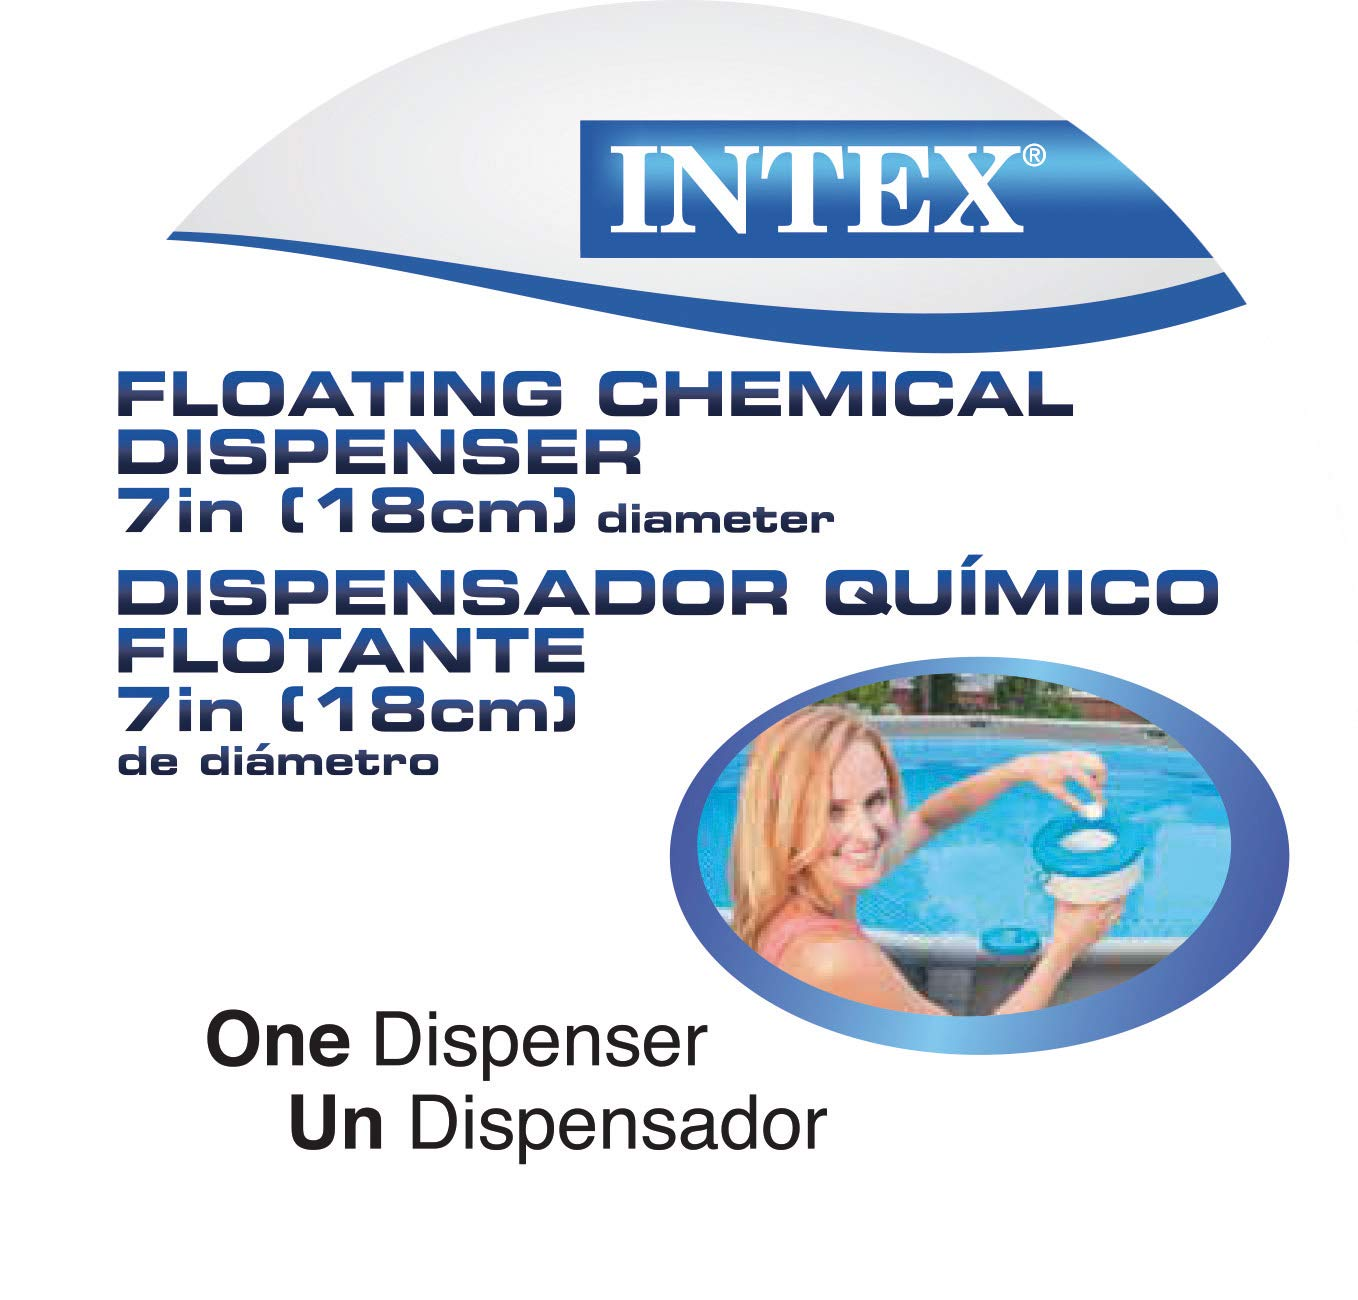 Amazon.com : Intex Recreation Corp 29041EP N/AA Floating Chemical Dispenser for Pools, 7-Inch, One Size, White/Blue : Swimming Pool Chemicals And Supplies ...